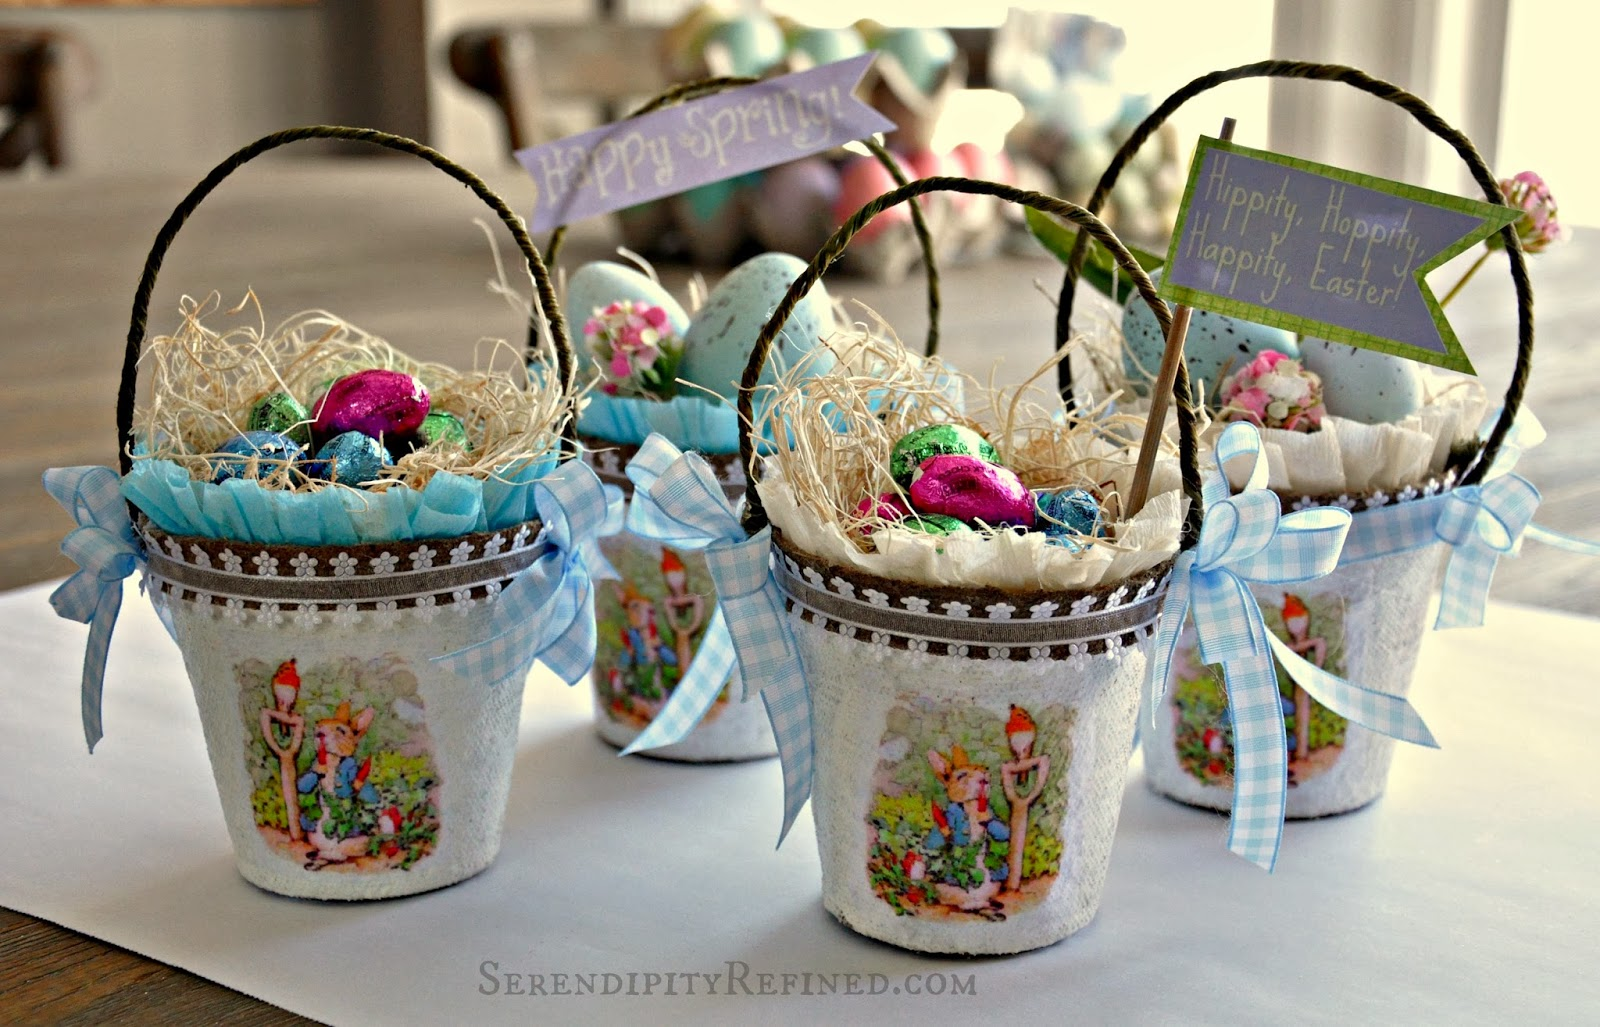 A Diy Spring Craft: Peter Rabbit Easter Egg Basket